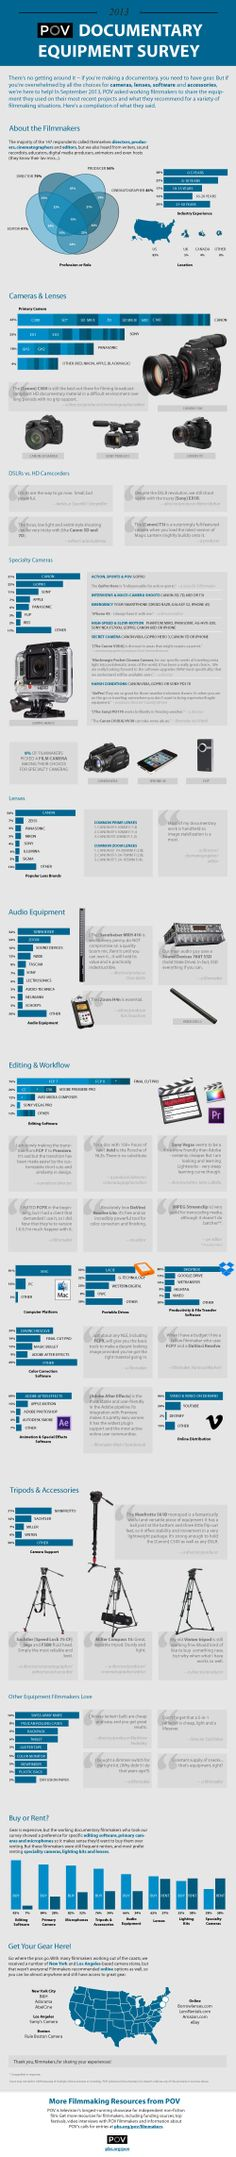 11 best Sentences images on Pinterest Film making, Film school and